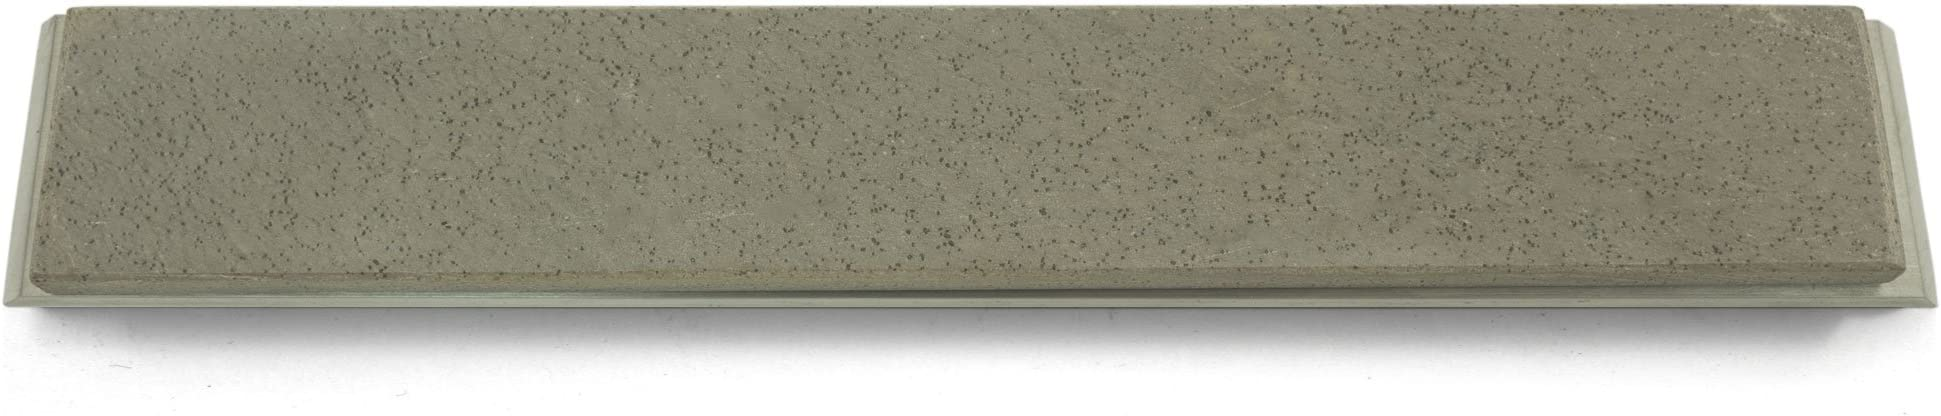 Select Grade Belgian Coticule Whetstone for KME 4 x 1 x 0.25 Belgian Natural Sharpening Stone with Aluminum Mounting of Estimated 12,000 grit